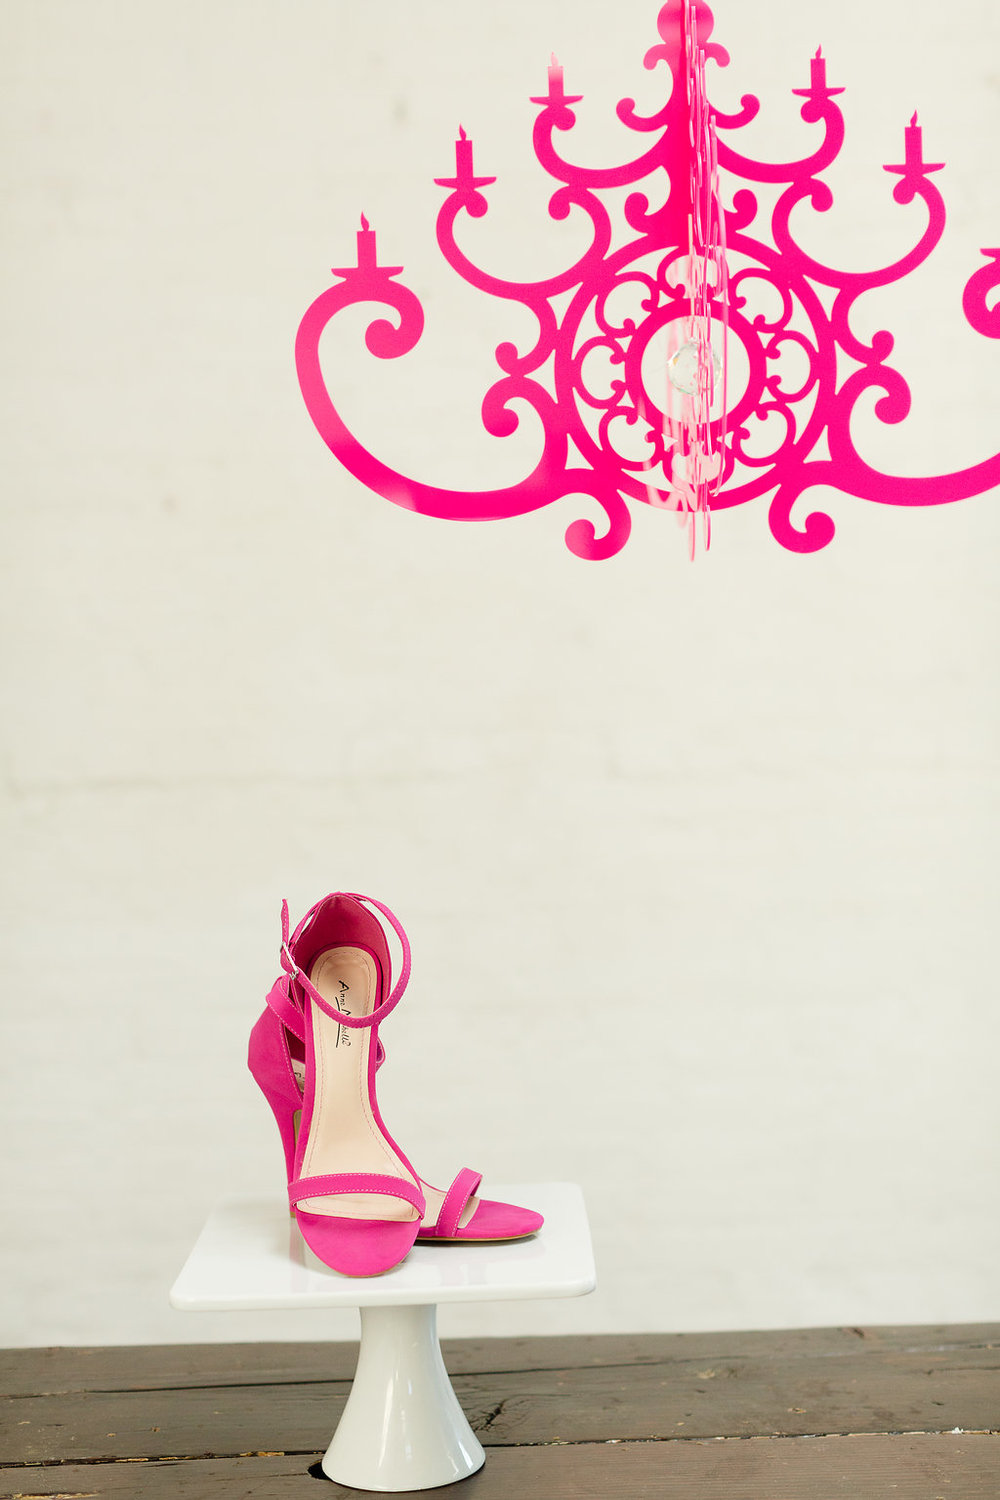 Neon Pink Wedding Shoes with Decor by Chandelier by NK / photo by Jessica Haley Photography